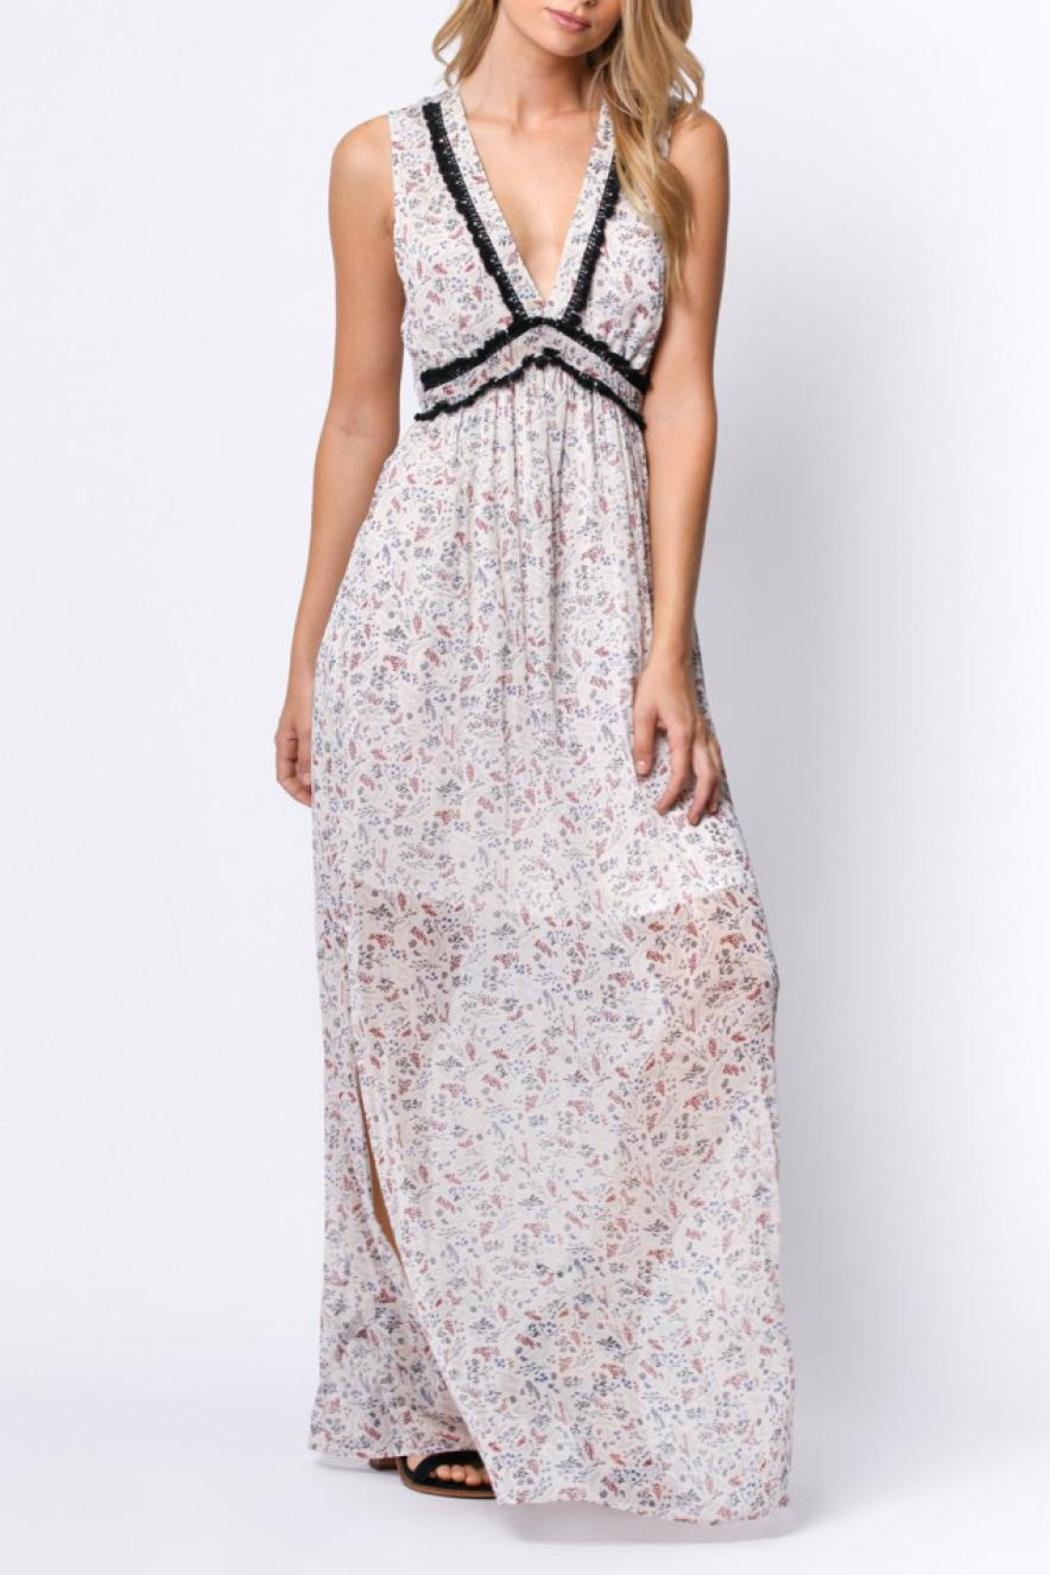 Paper Crane Floral Maxi Dress From Virginia By Modampsoul